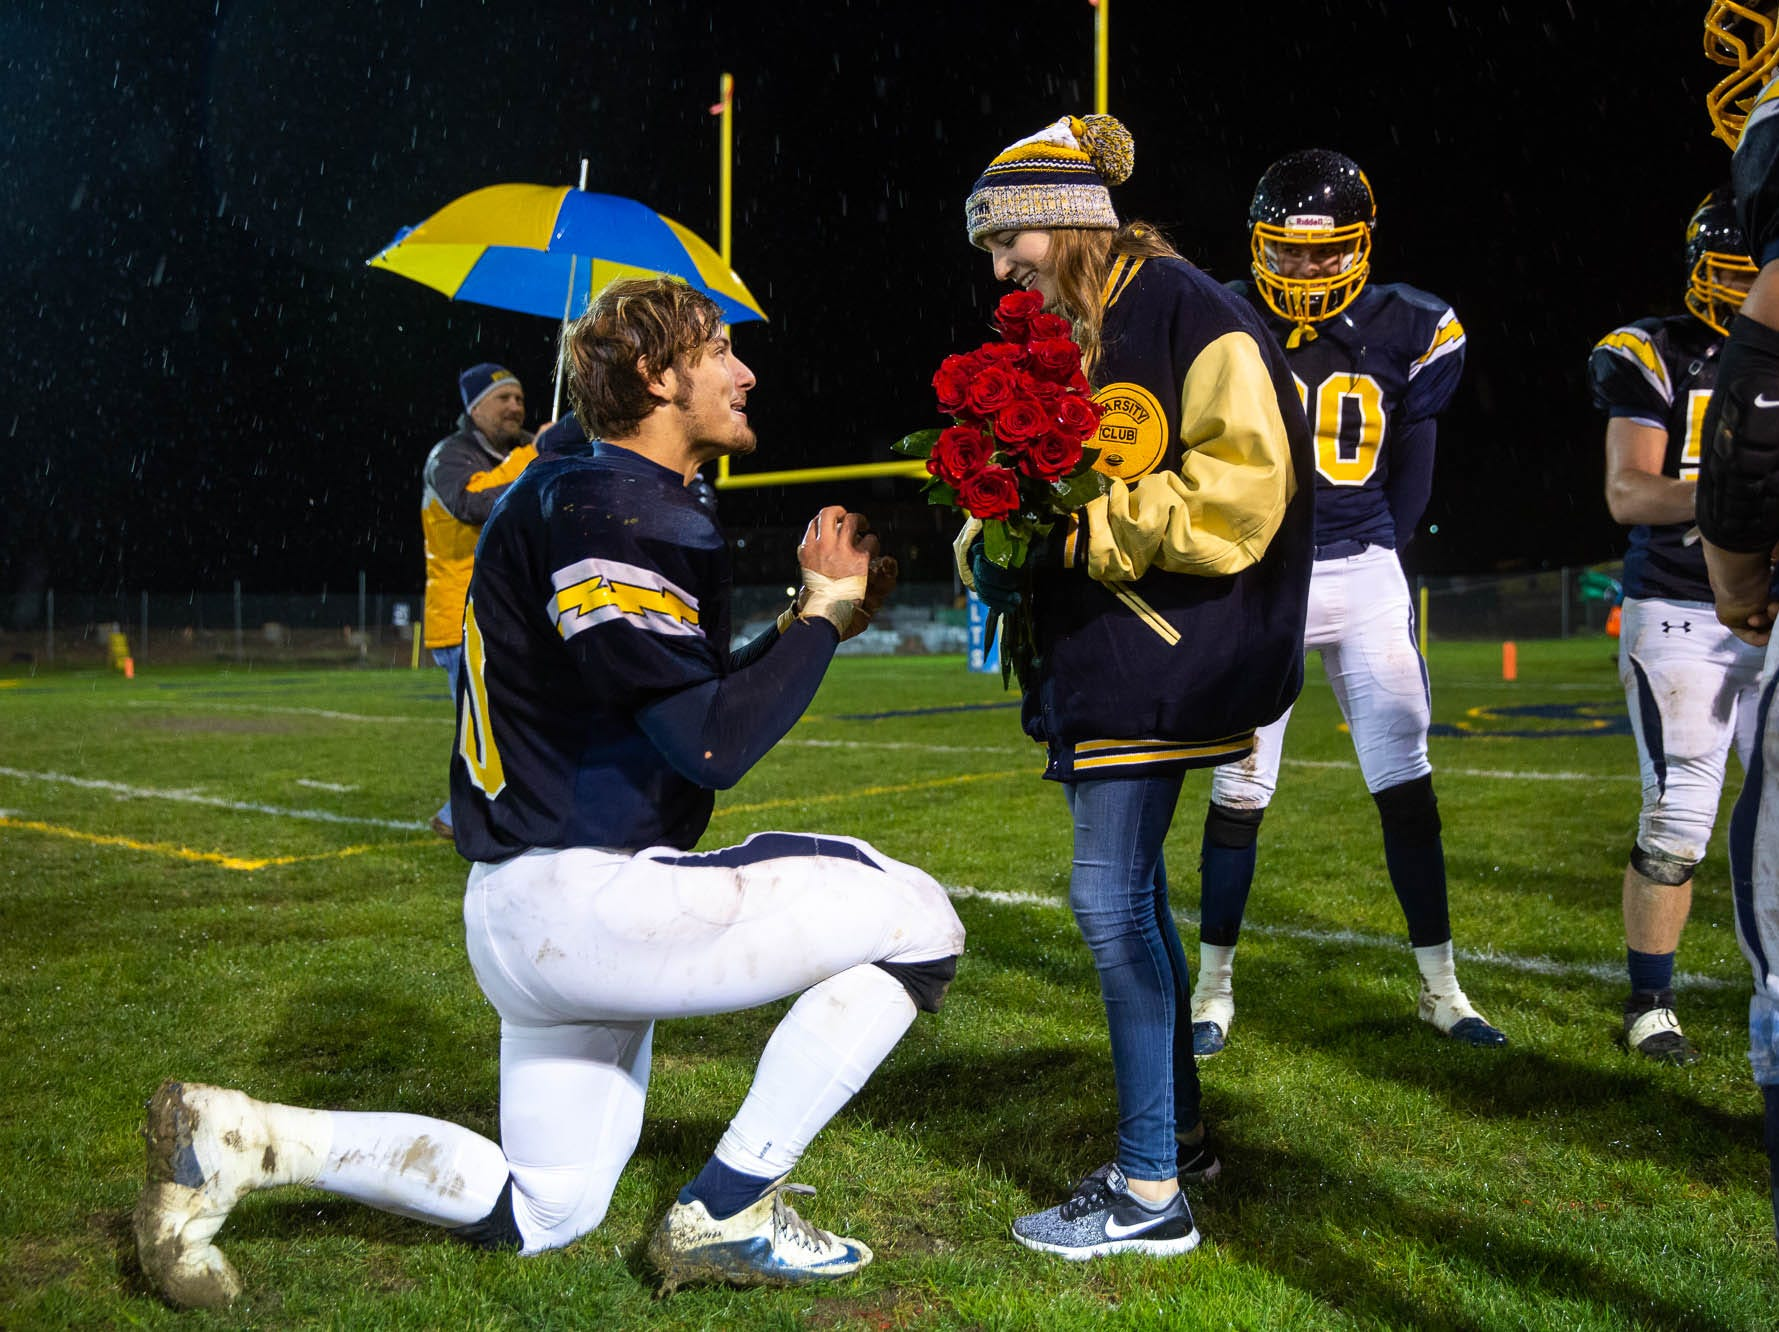 Littlestown's Malachi Fodor (70) proposes to his girlfriend, Miriam Worley, after winning a game against Fairfield, Friday, Oct. 26, 2018, at Littlestown's Memorial Stadium.